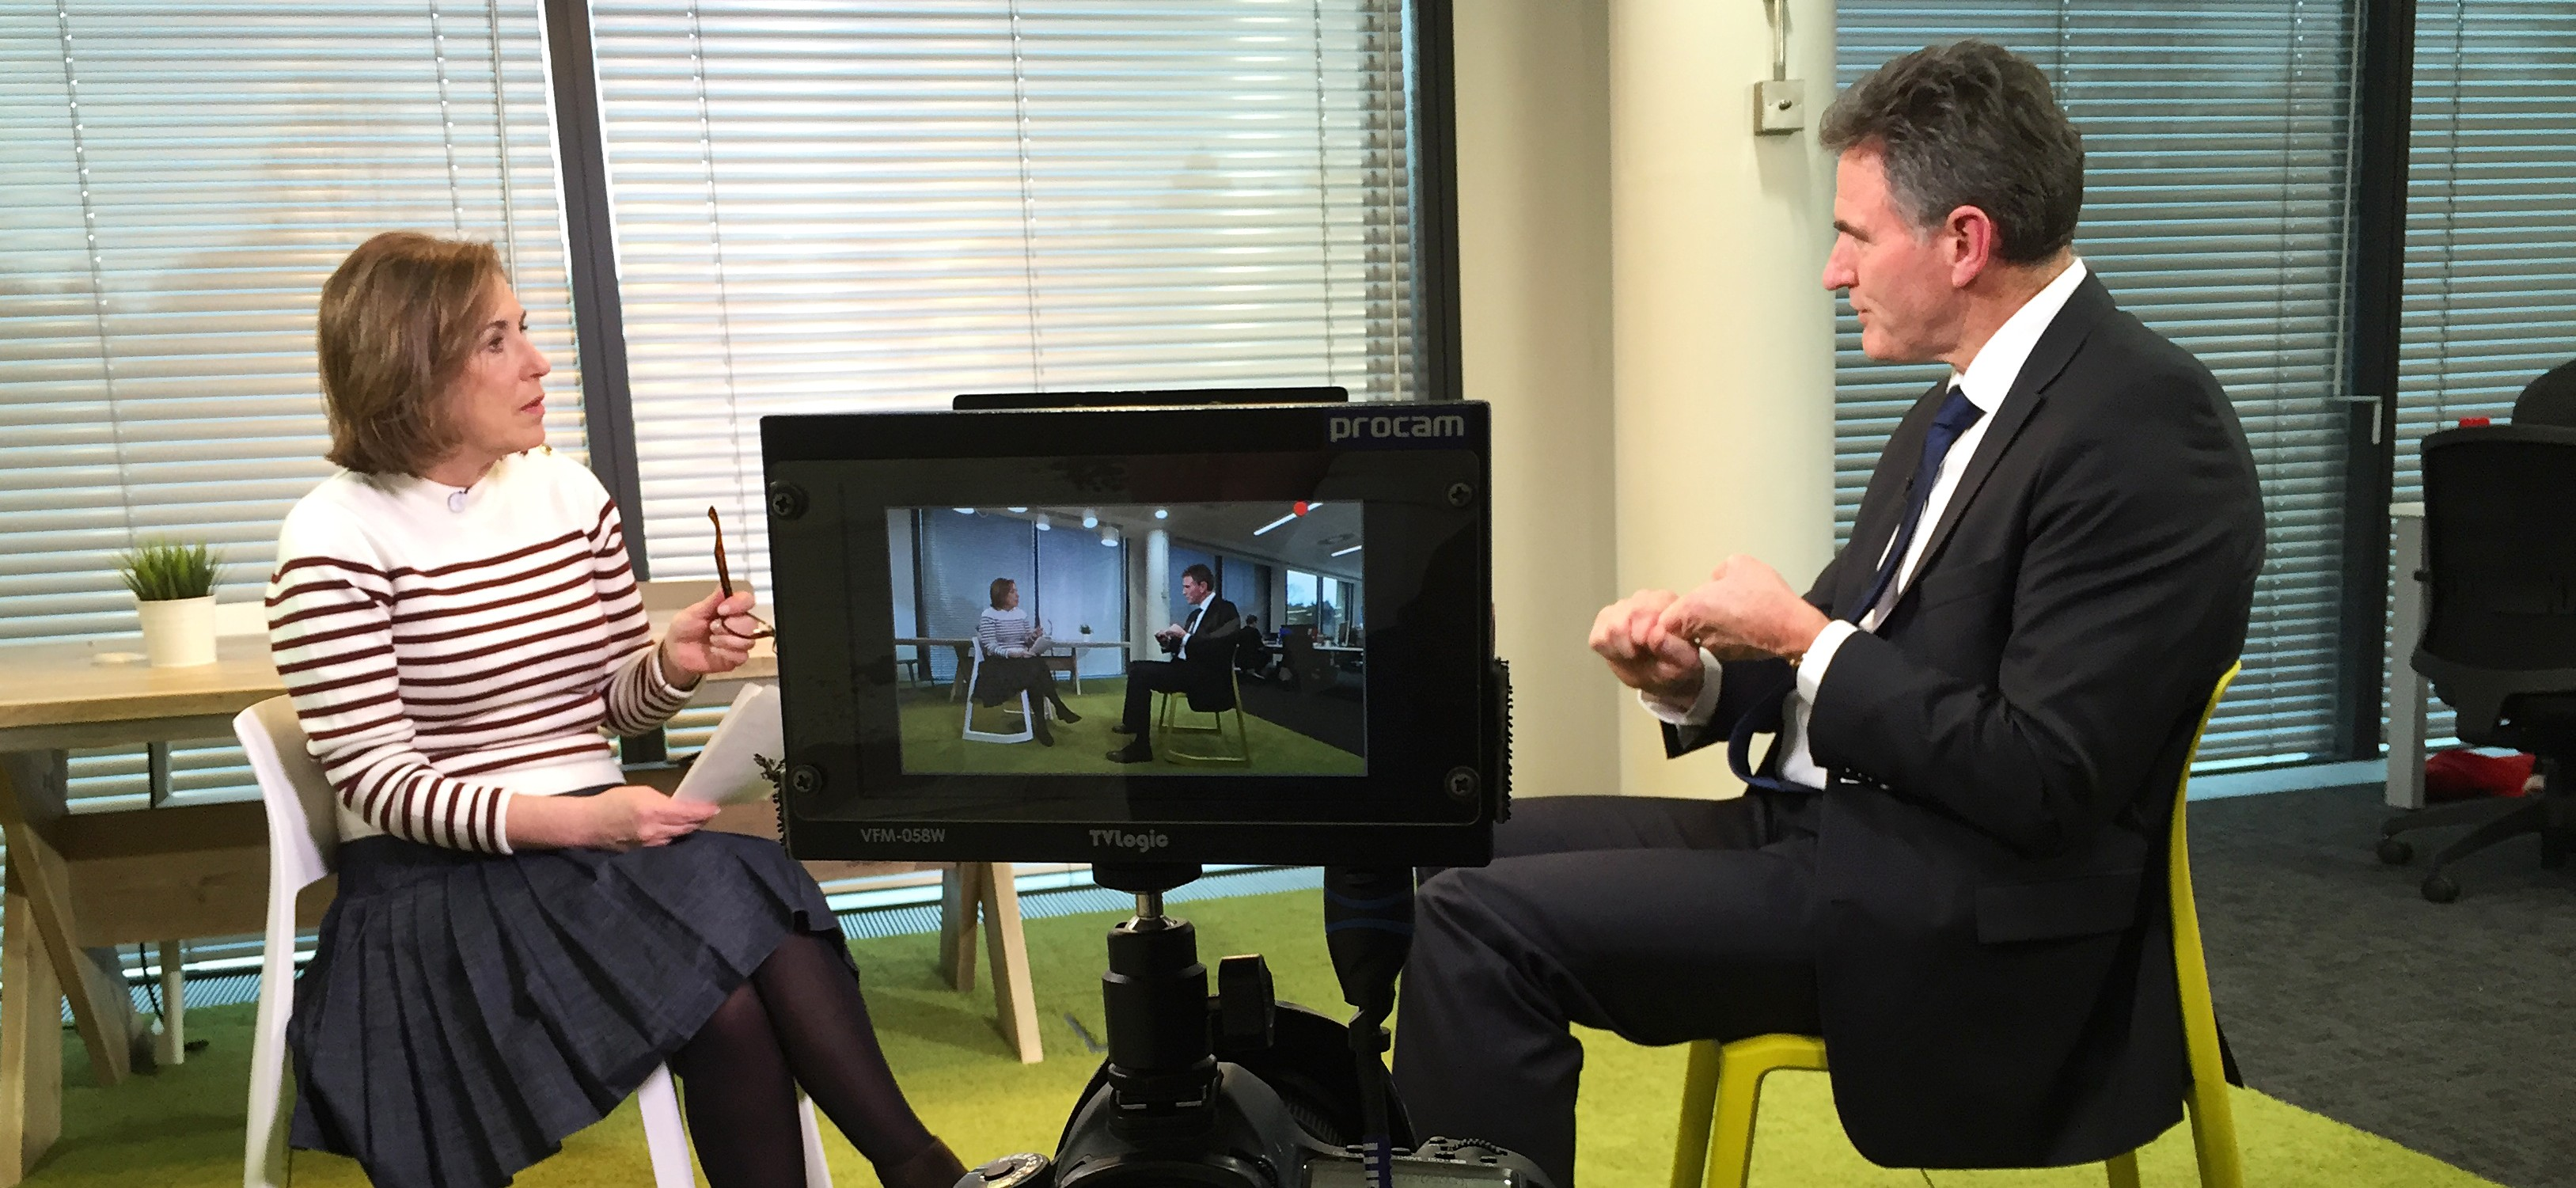 Kirsty Wark interview at RBS HQ (BBC Newsnight)